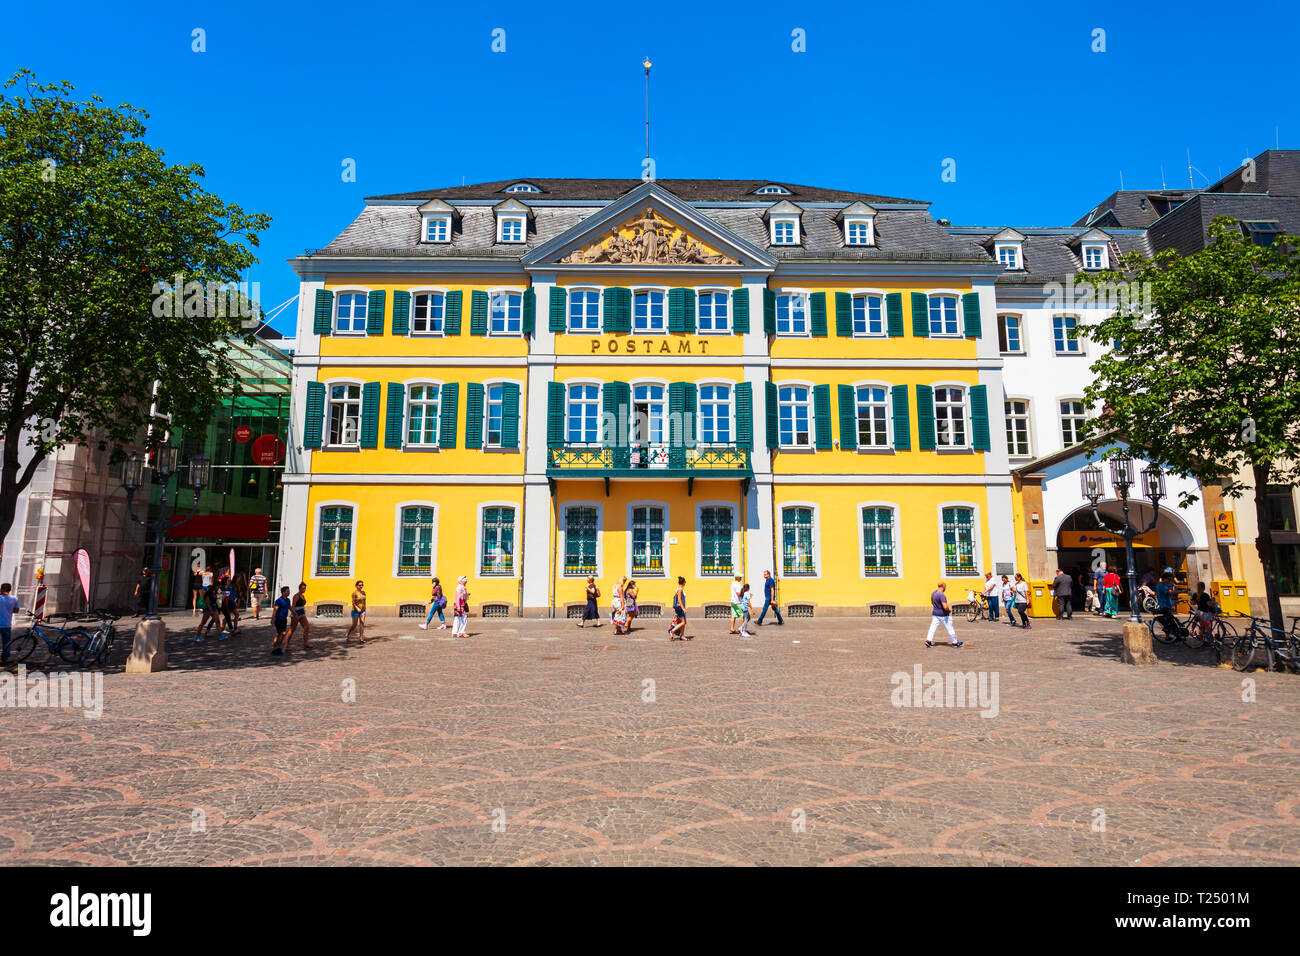 BONN, GERMANY - JUNE 29, 2018: Post office in the centre of Bonn city in Germany Stock Photo